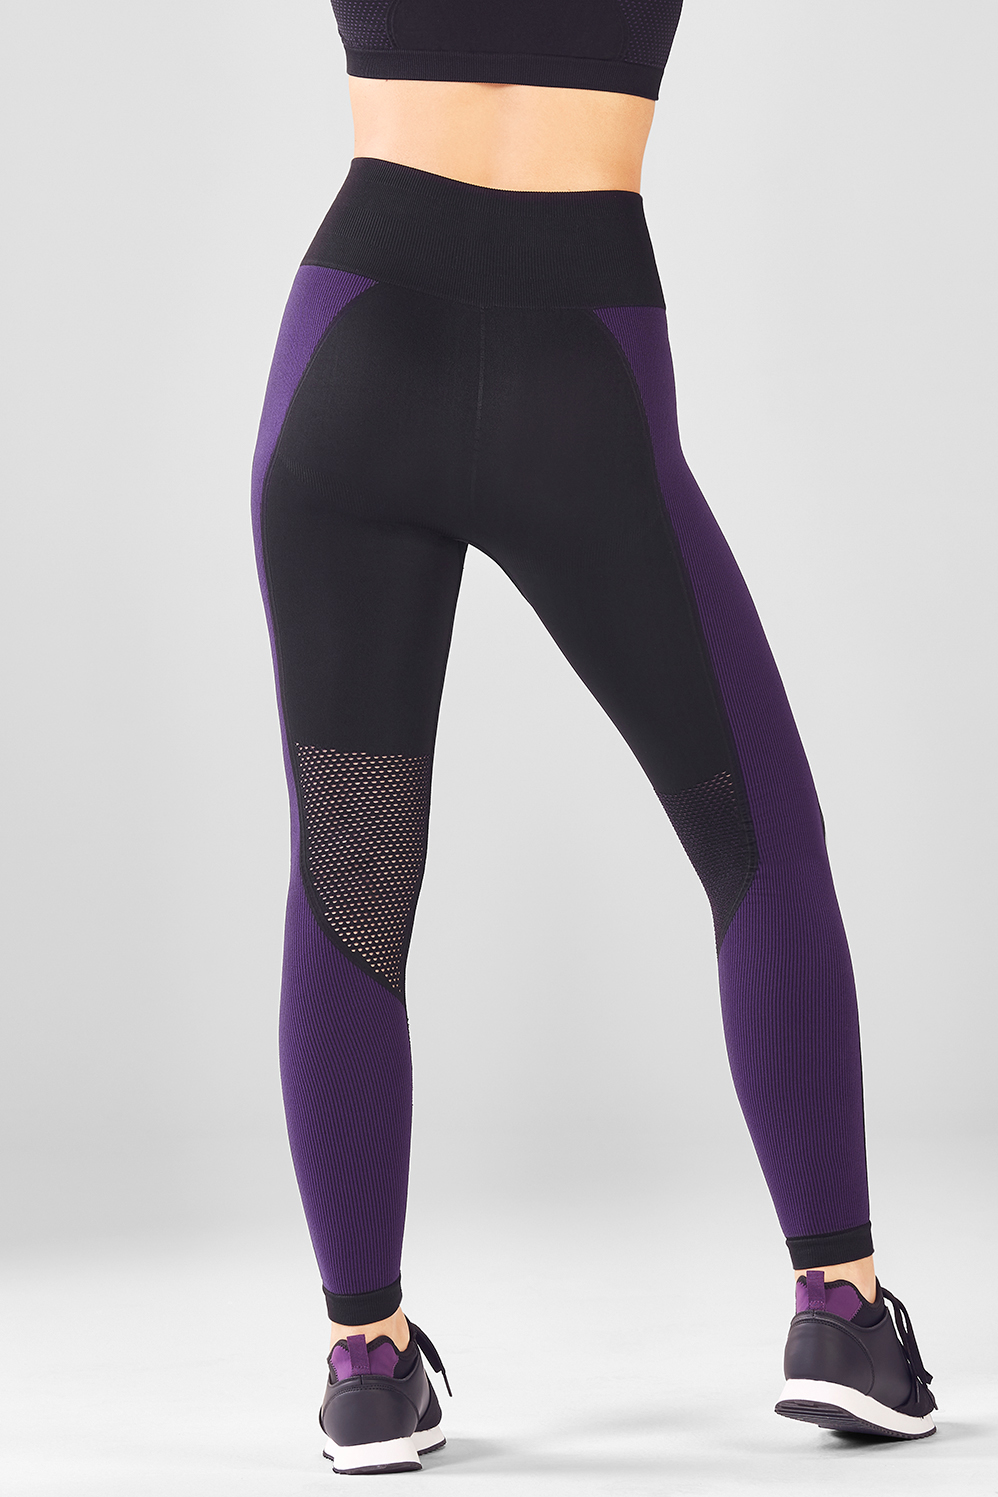 a3a66b41bdda3 Seamless High-Waisted Statement Legging - Black/Eggplant